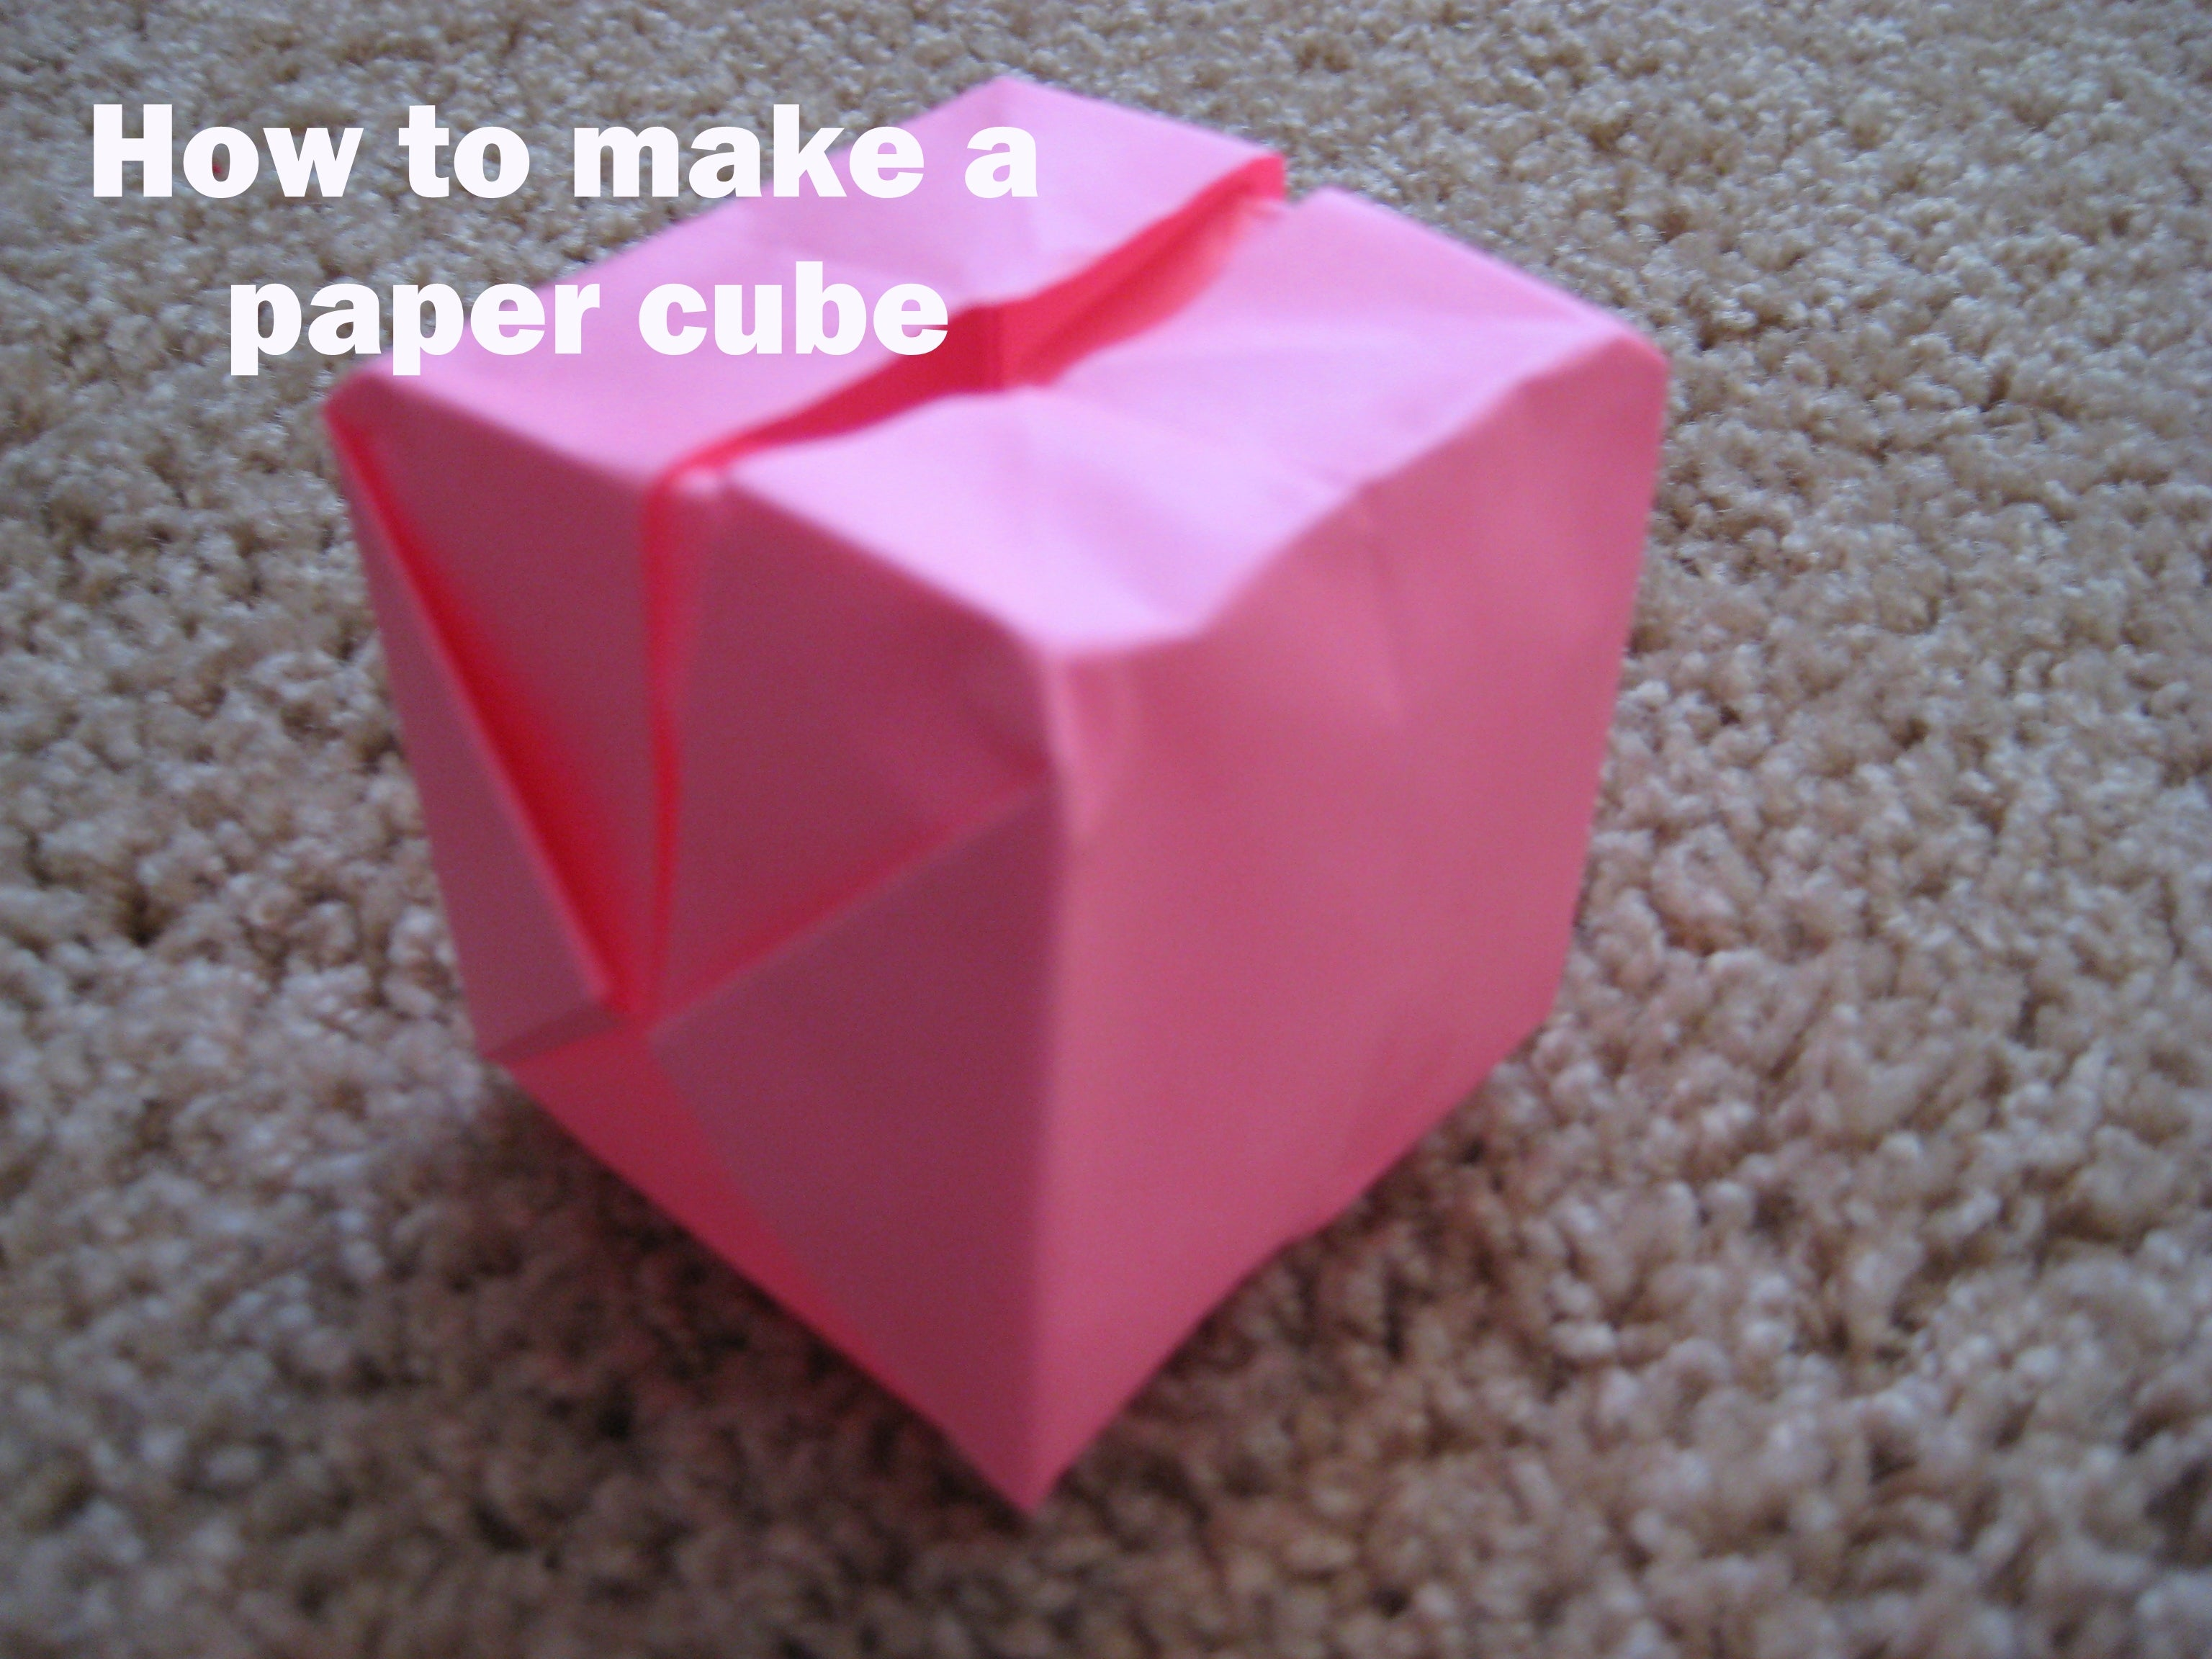 How To Make a Paper Boat That Floats - Origami - YouTube | 2304x3072